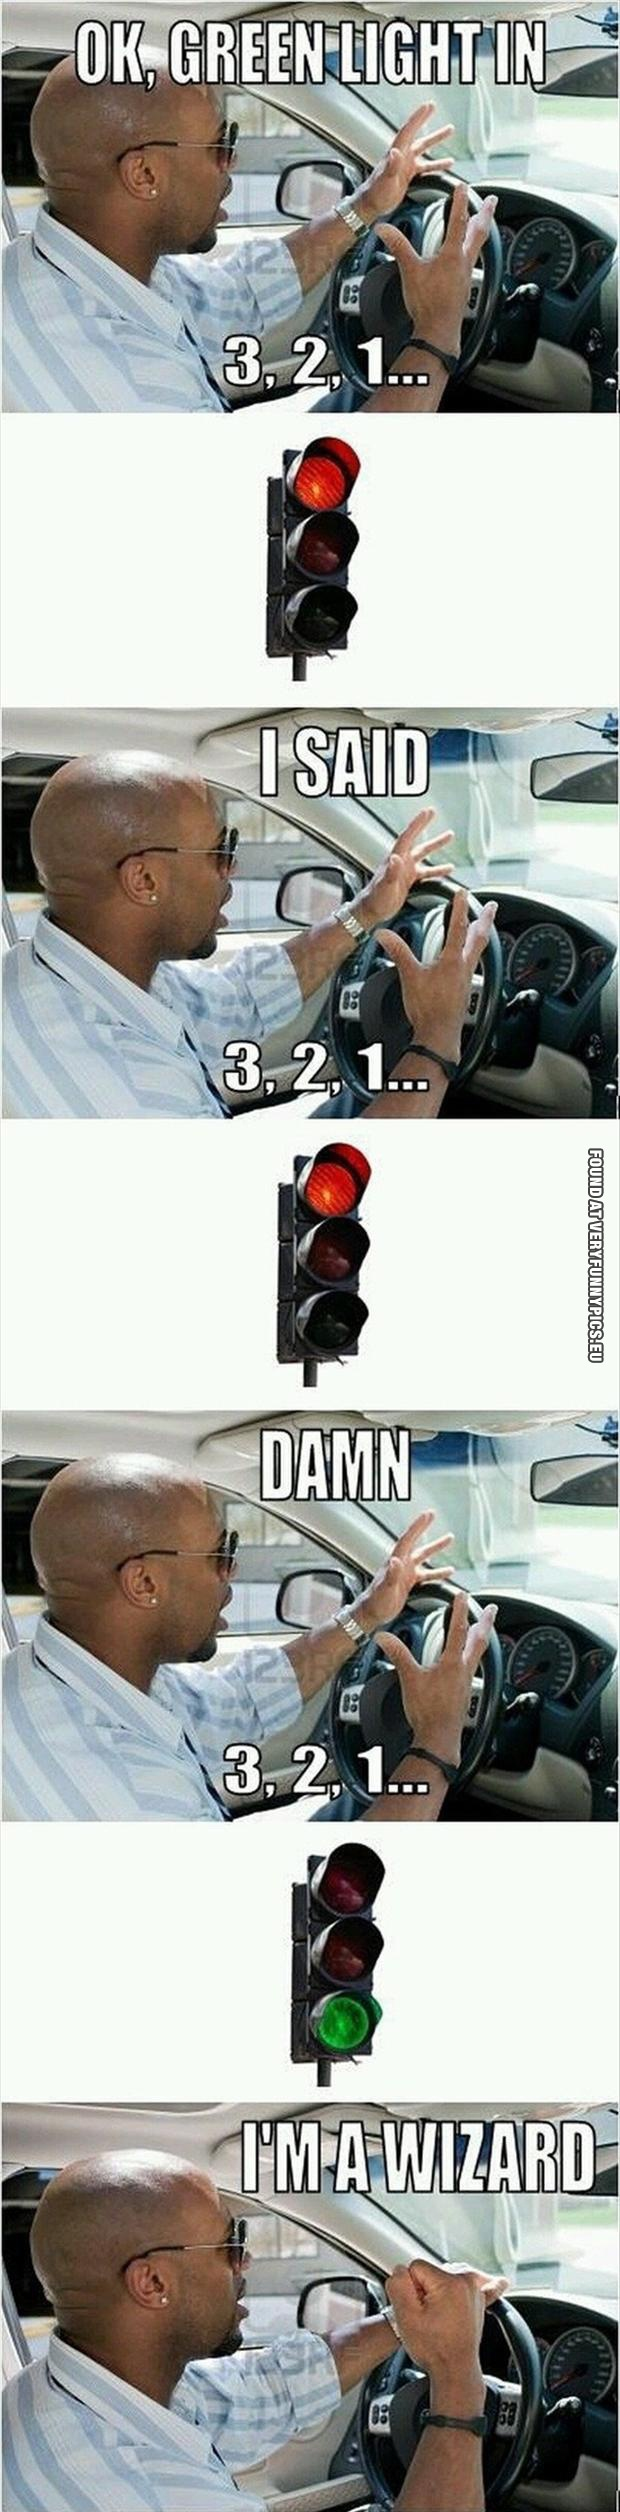 Funny Picture - I'm a wizzard at traffic lights